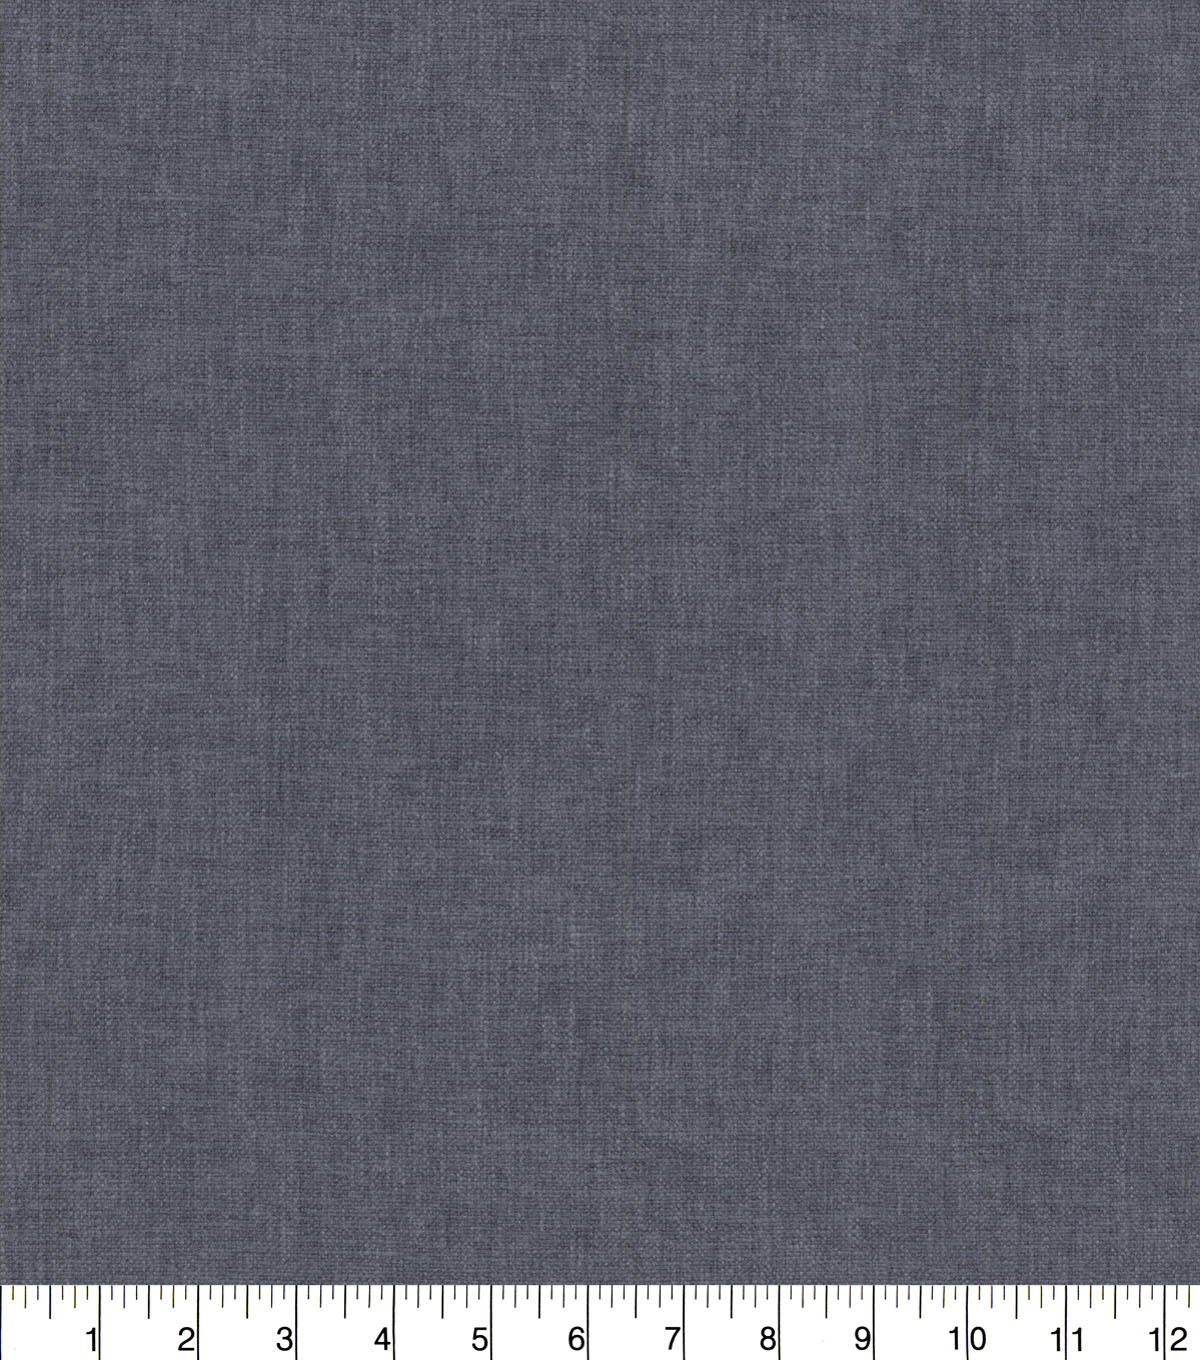 P/K Lifestyles Upholstery Fabric 13x13\u0022 Swatch-Companion Charcoal